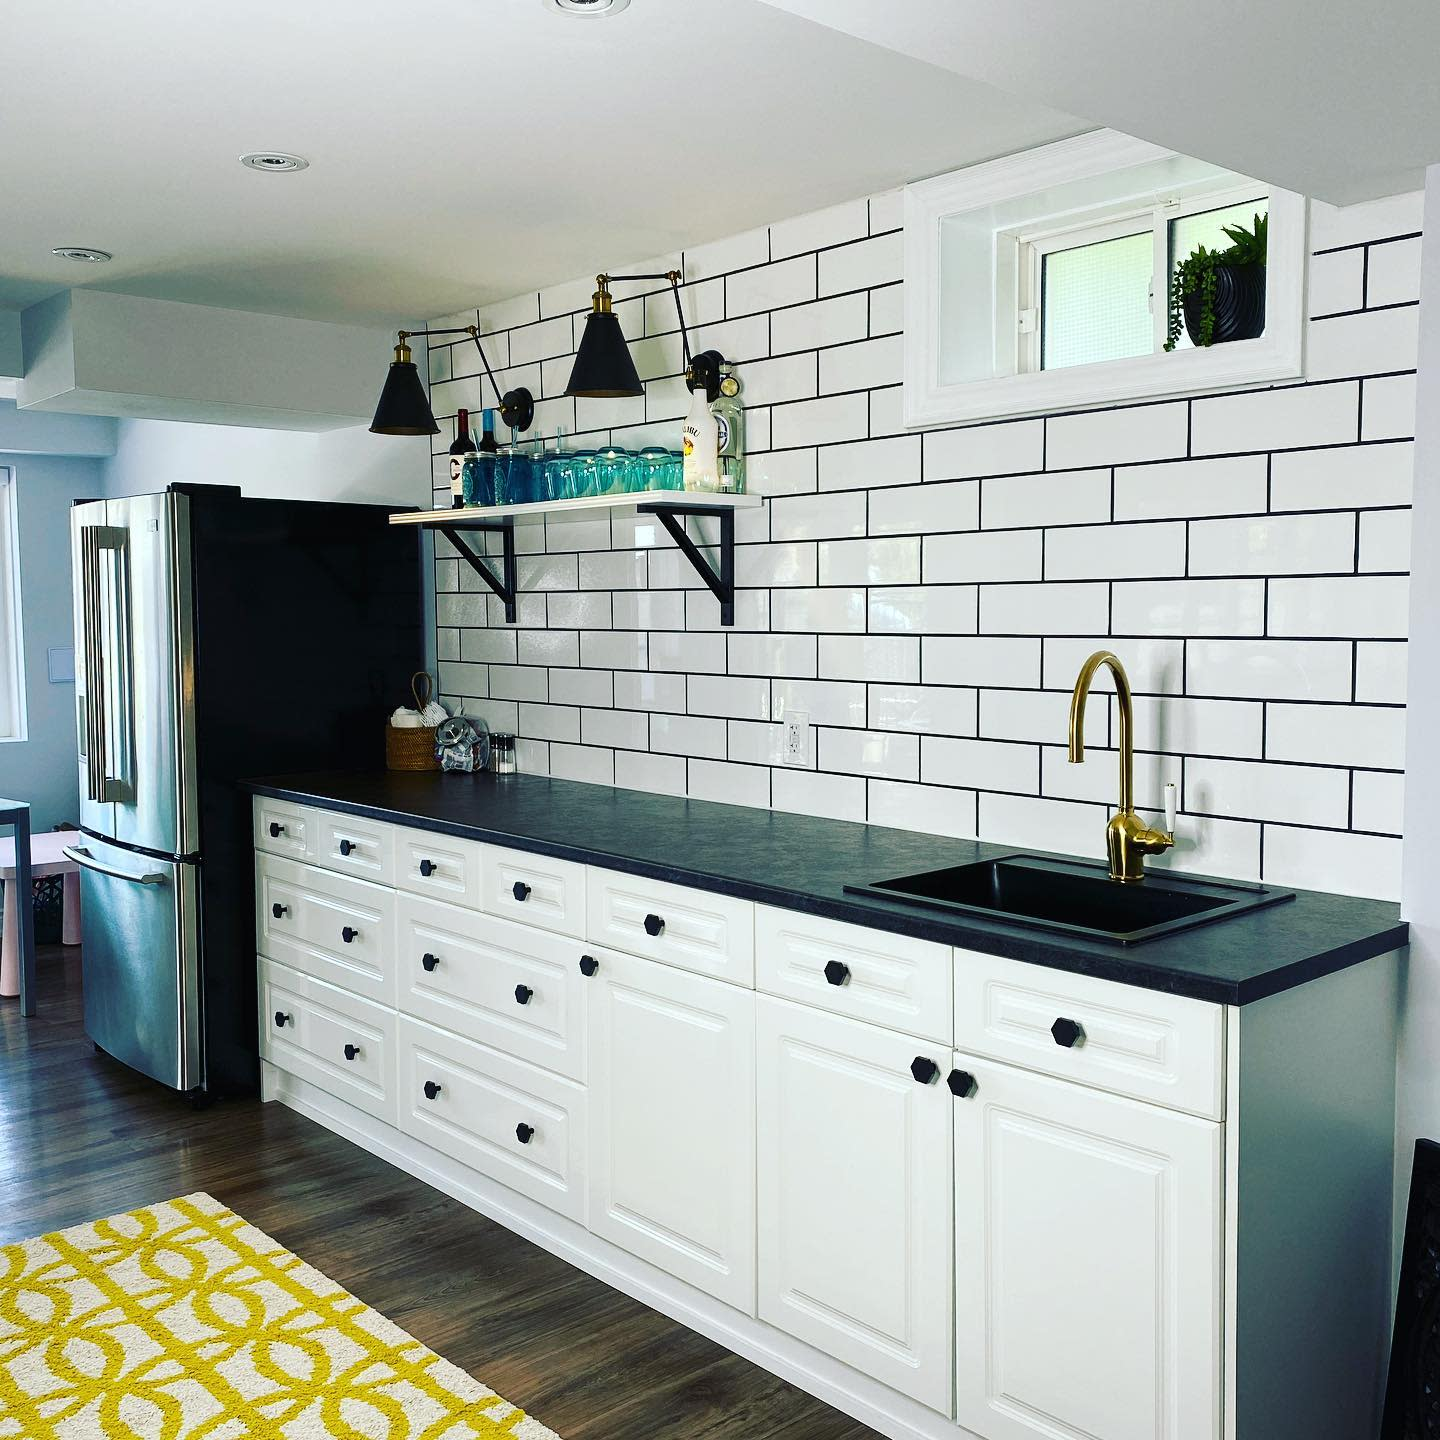 DIY Basement Kitchen Ideas -everleighhart